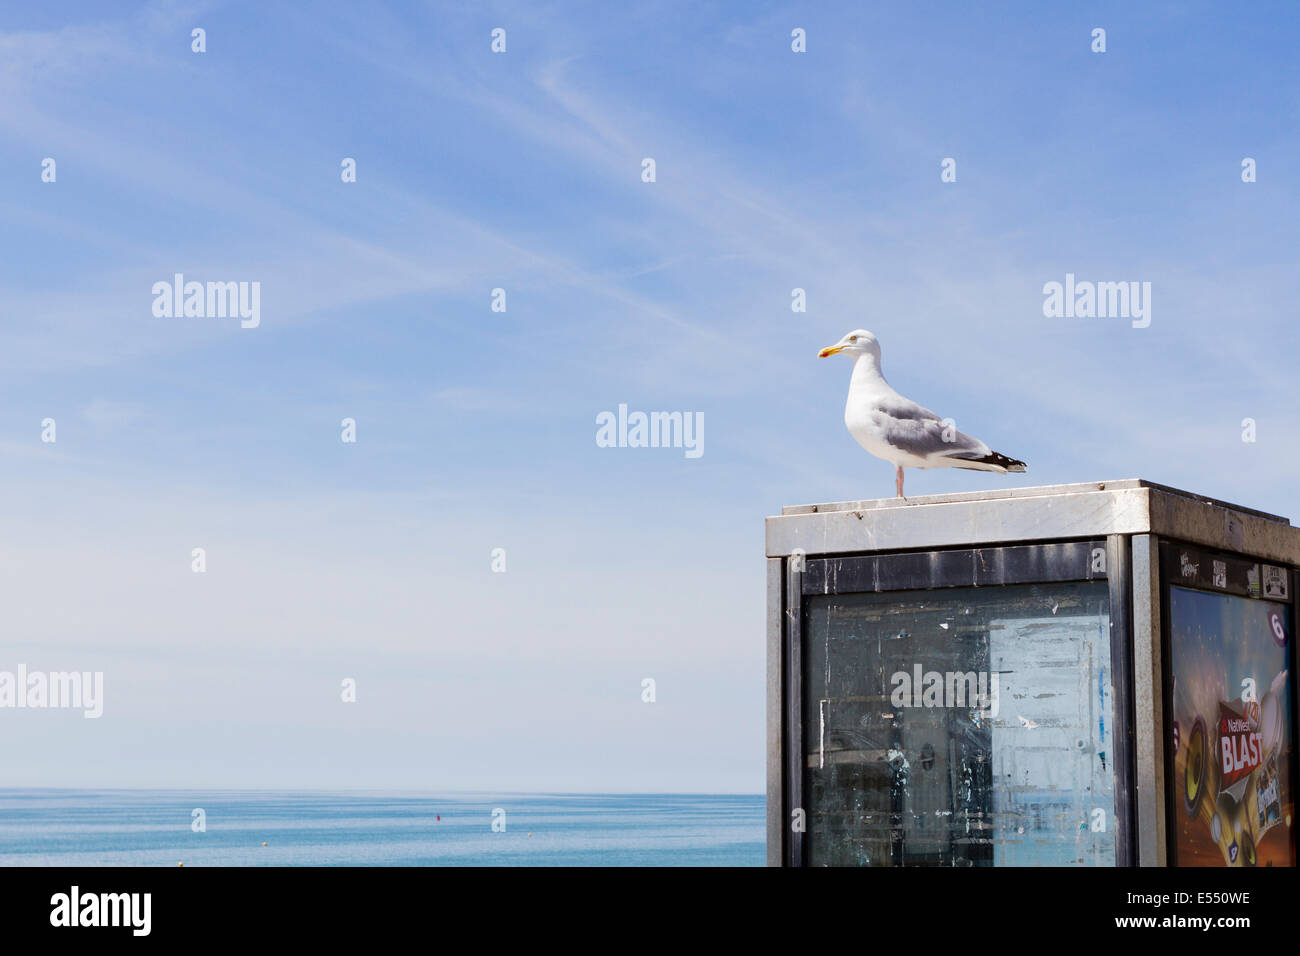 Herring gull (Larus argentatus) perched on a phone box, Brighton, East Sussex, England, UK - Stock Image